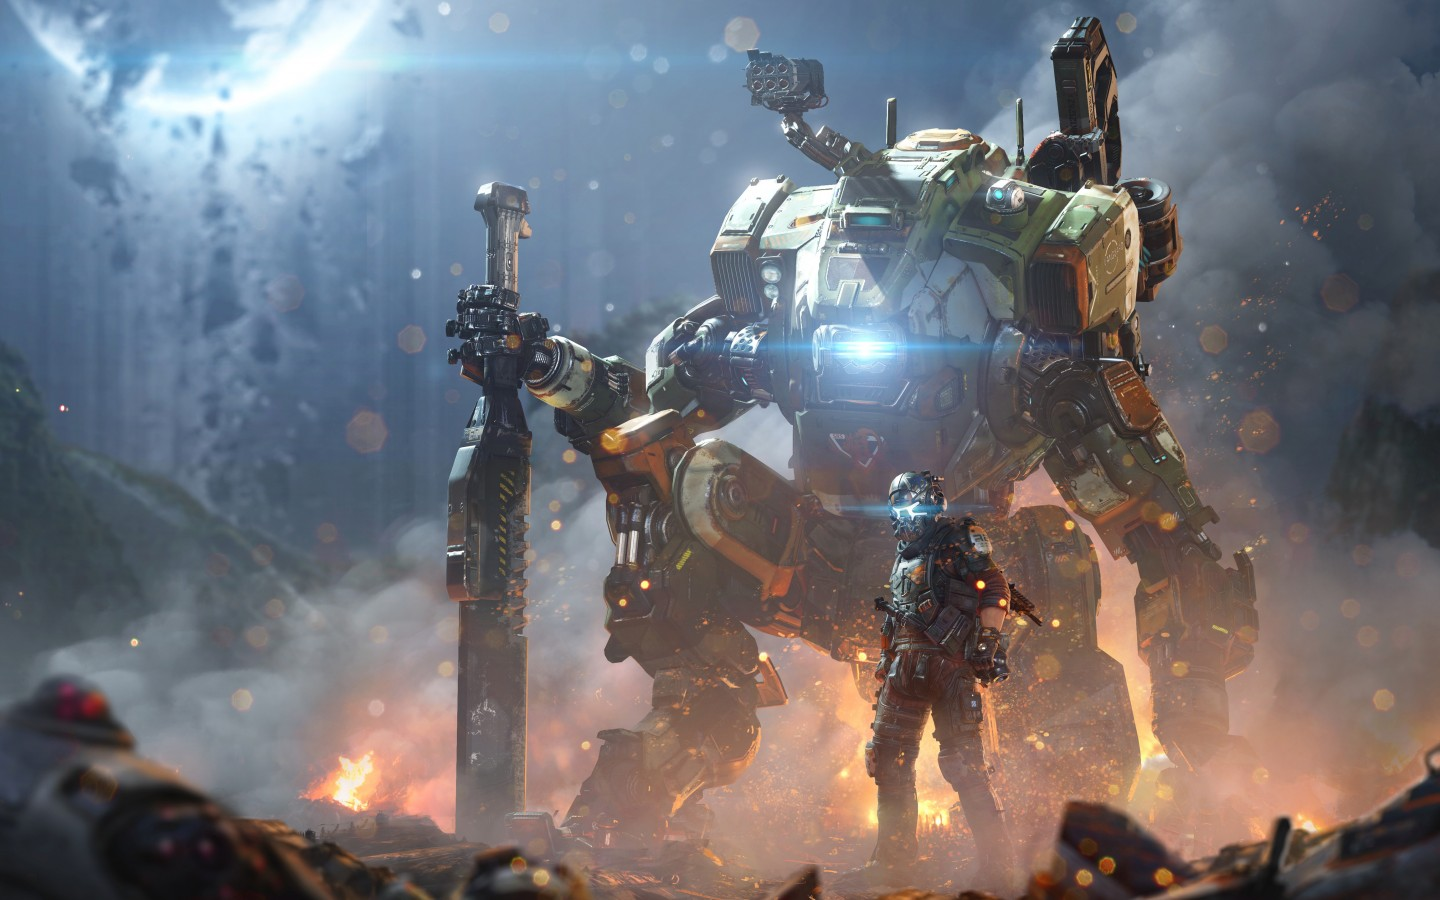 Fall Wallpaper For Iphone 7 Titanfall 2 5k Wallpapers Hd Wallpapers Id 18911